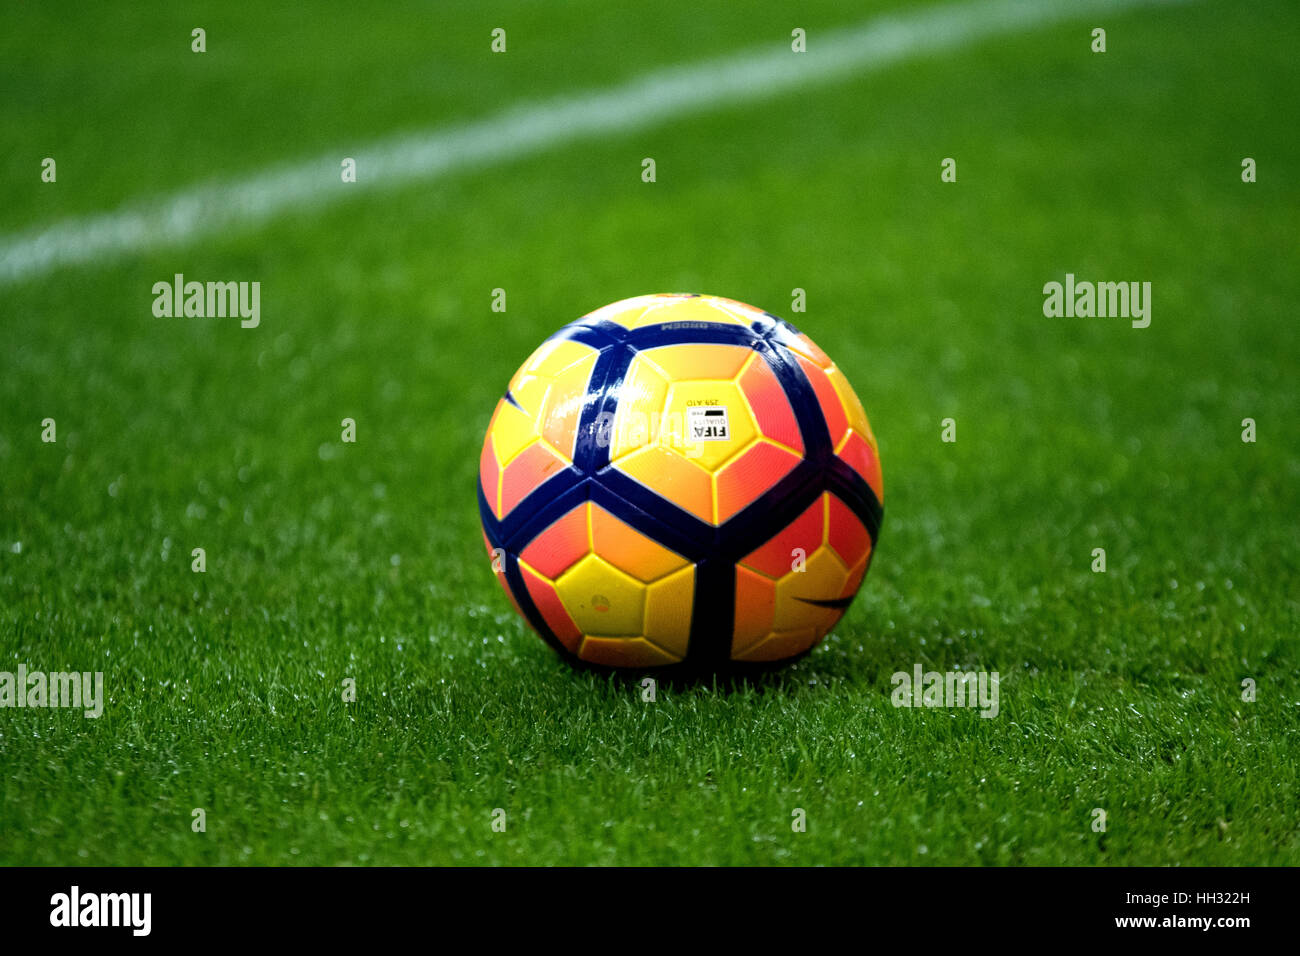 Gijon, Spain. 15th January, 2017. The ball during the football match of eigthteenth round of Season 2016/2017 of - Stock Image